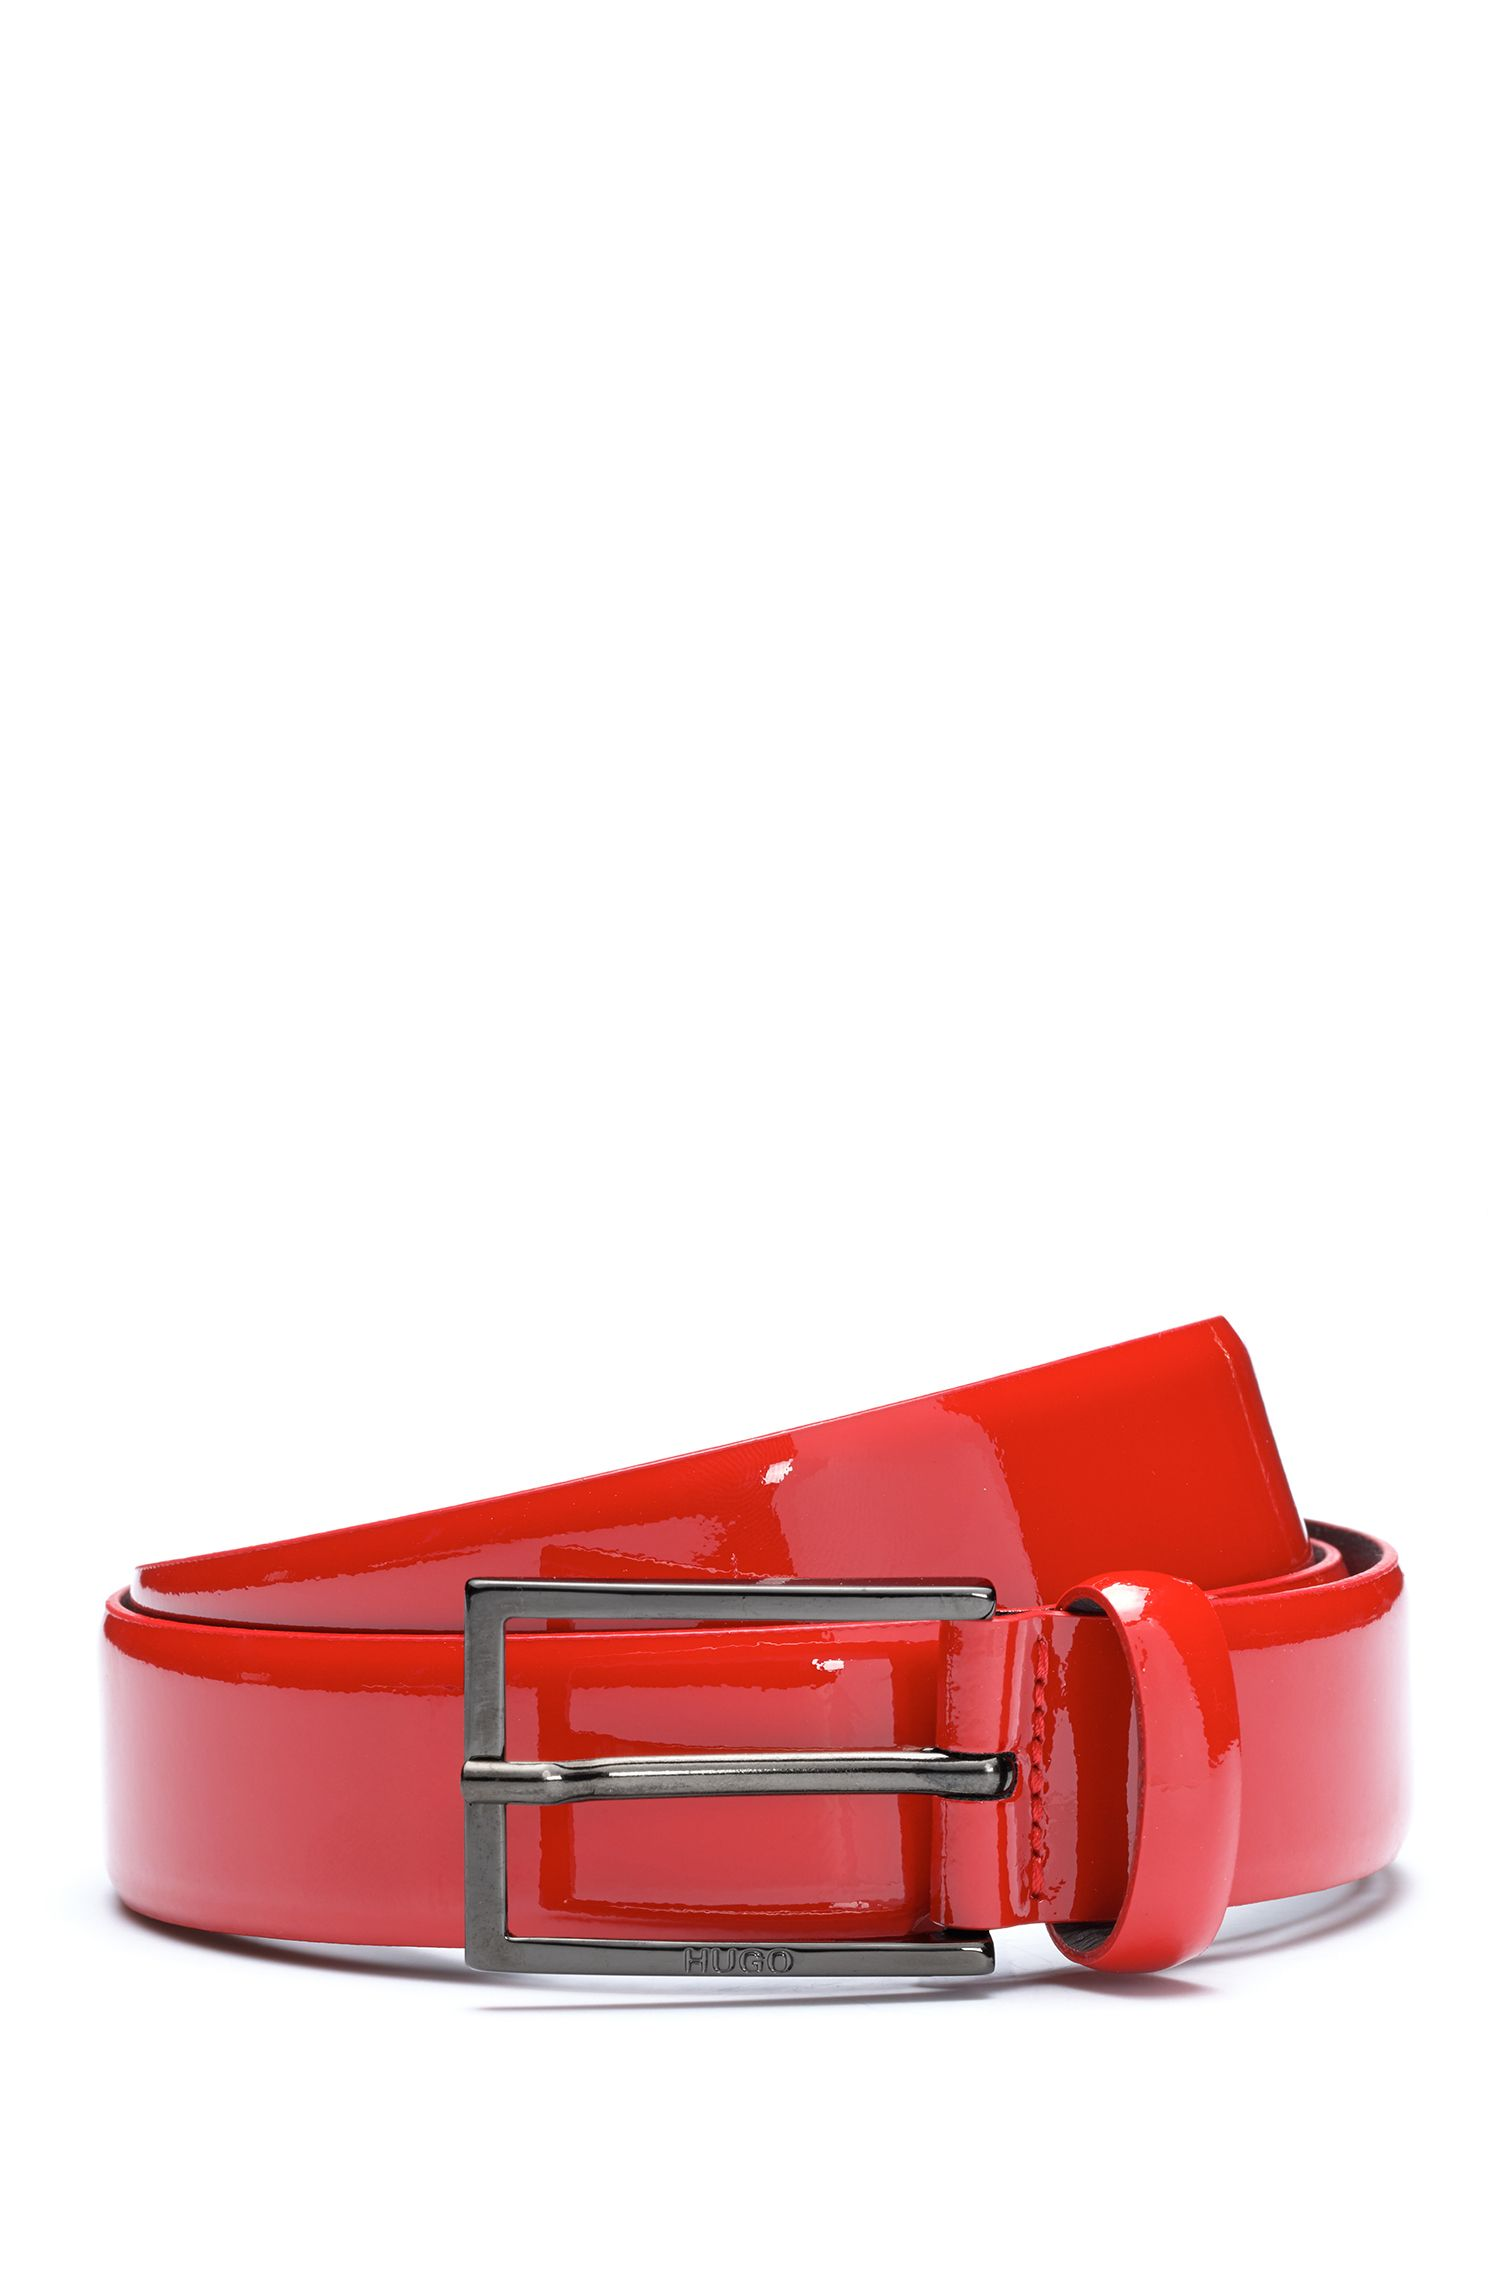 Patent Leather Belt | Gavino, Dark Red